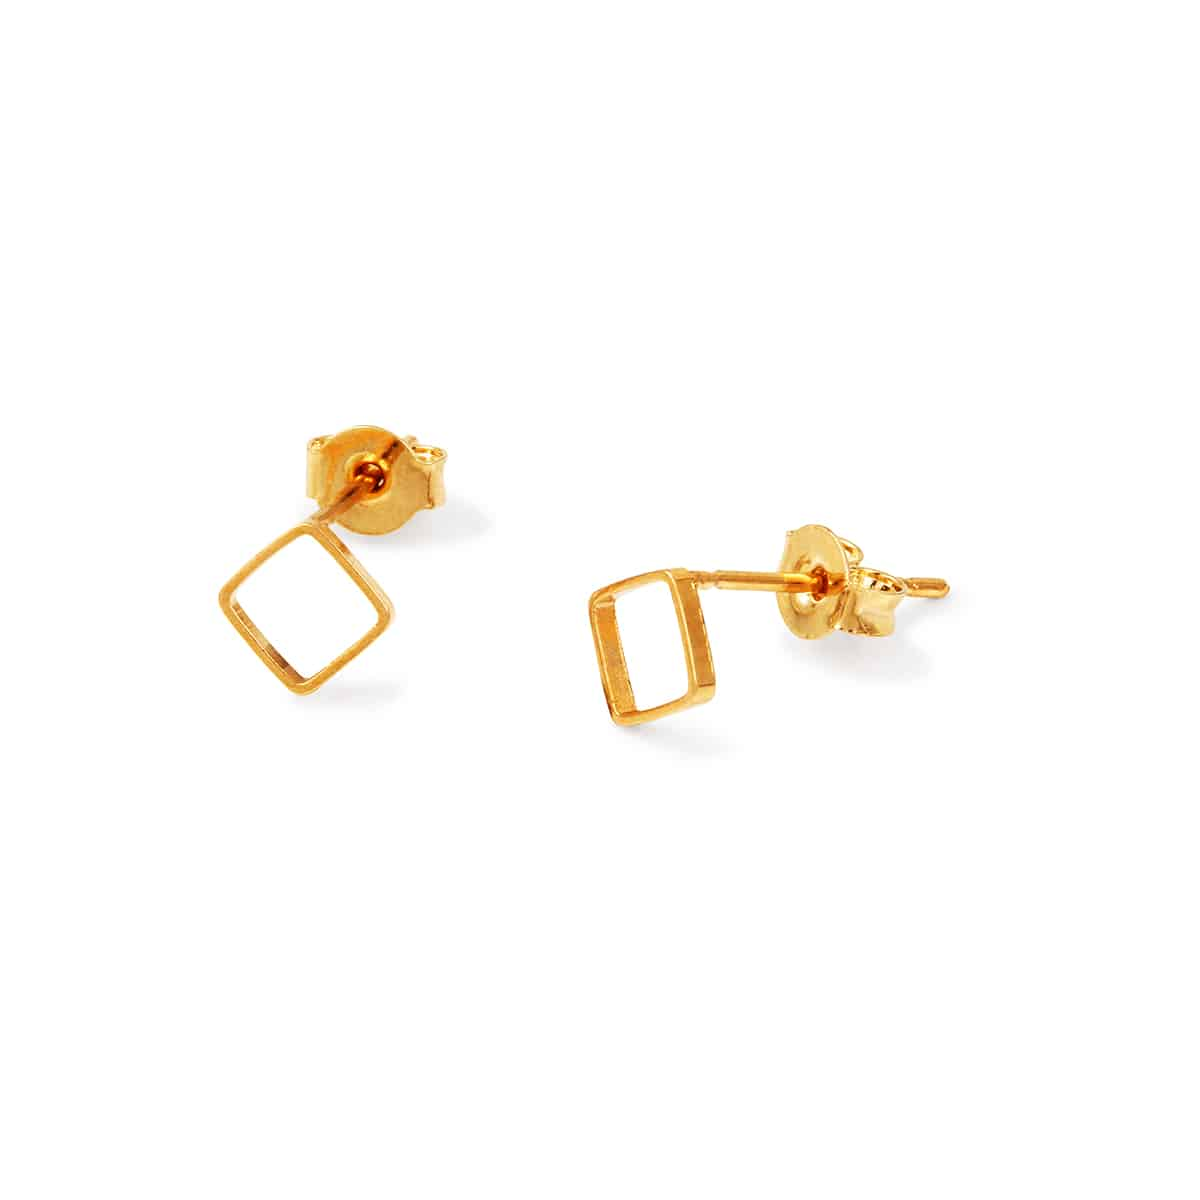 LA earrings gold fashion woman bdm studio